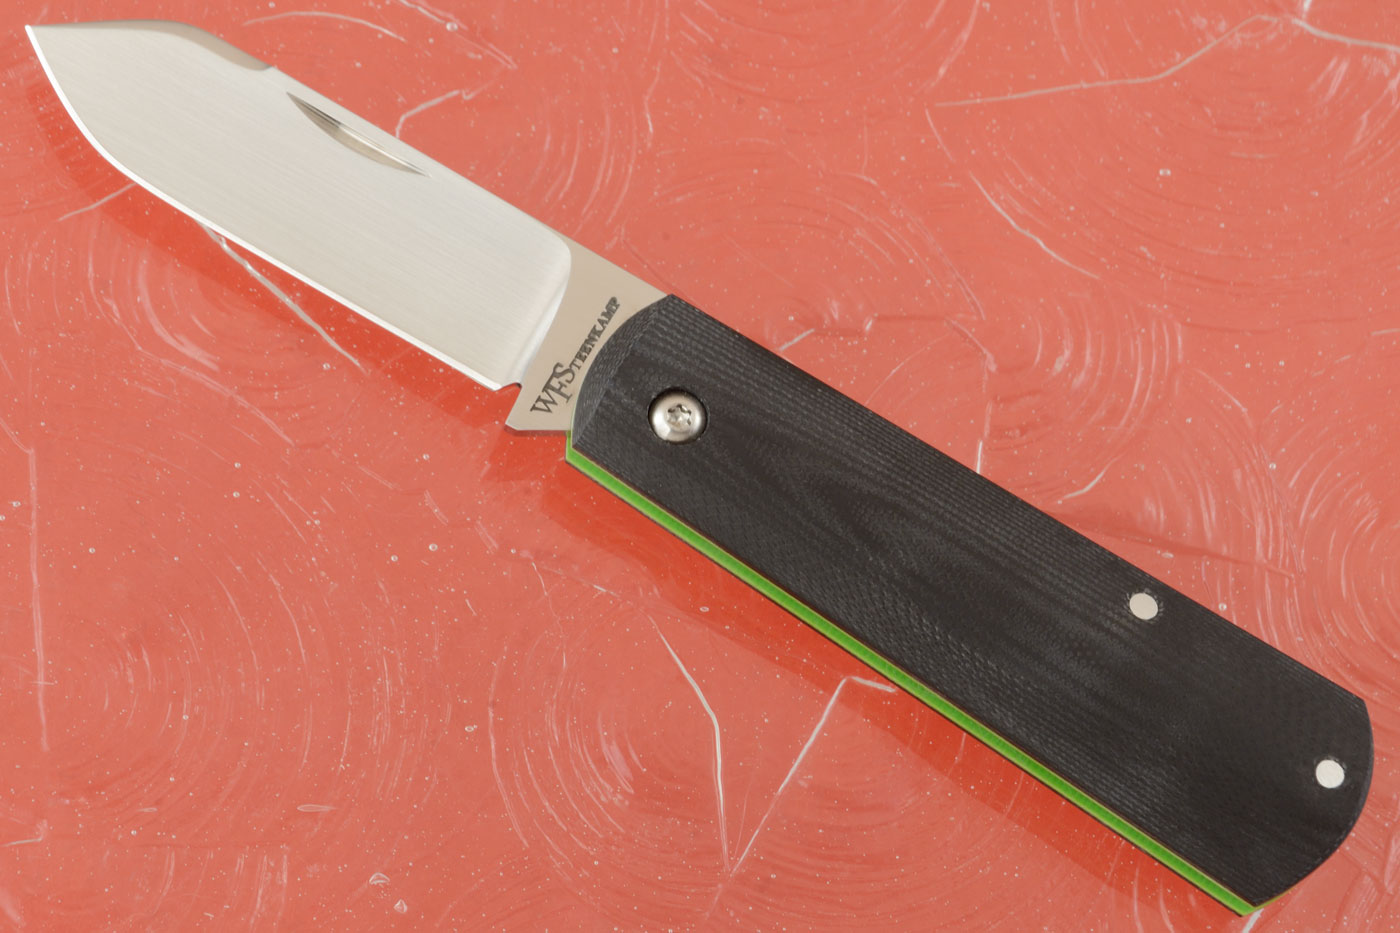 Barlow Friction Folder with Black and Lime Green G10